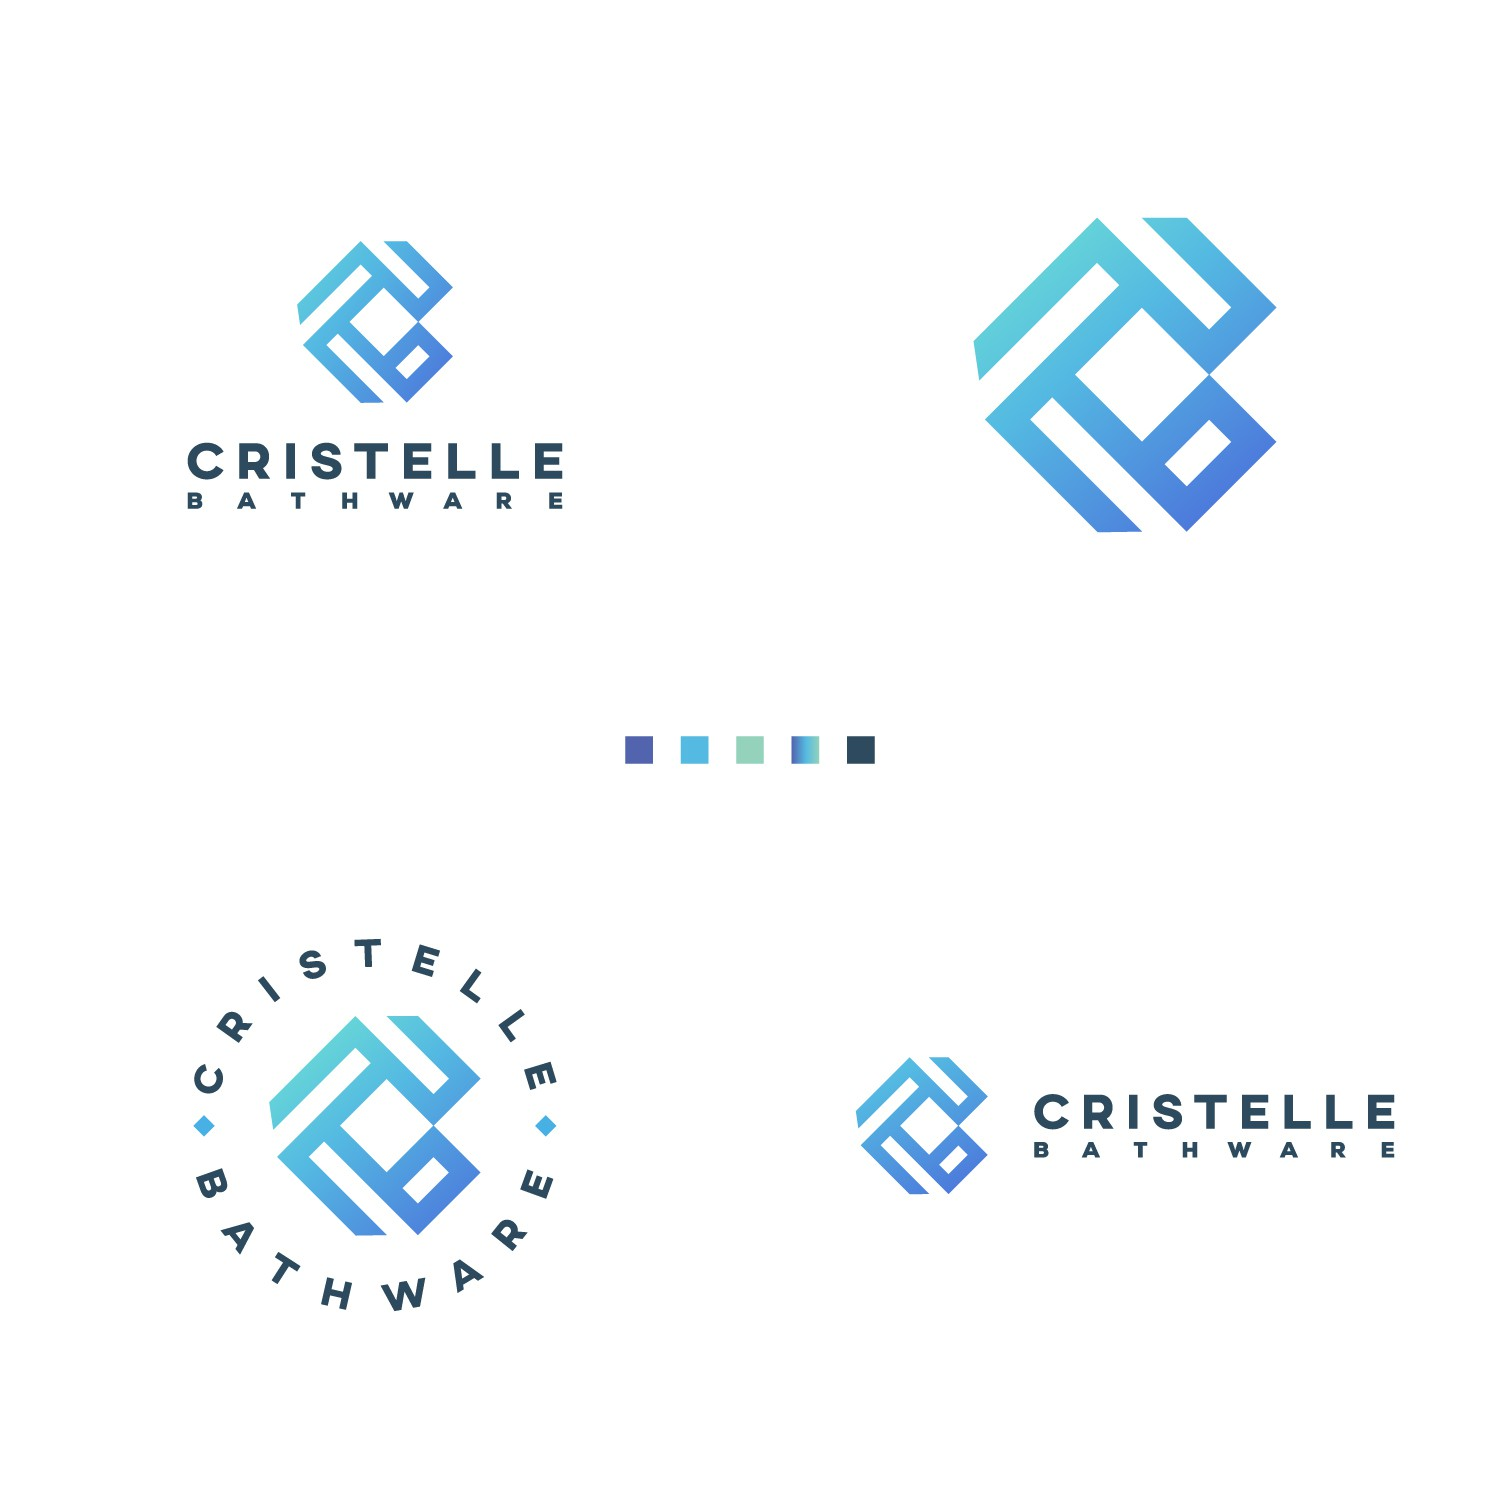 Please design a modern logo for our company